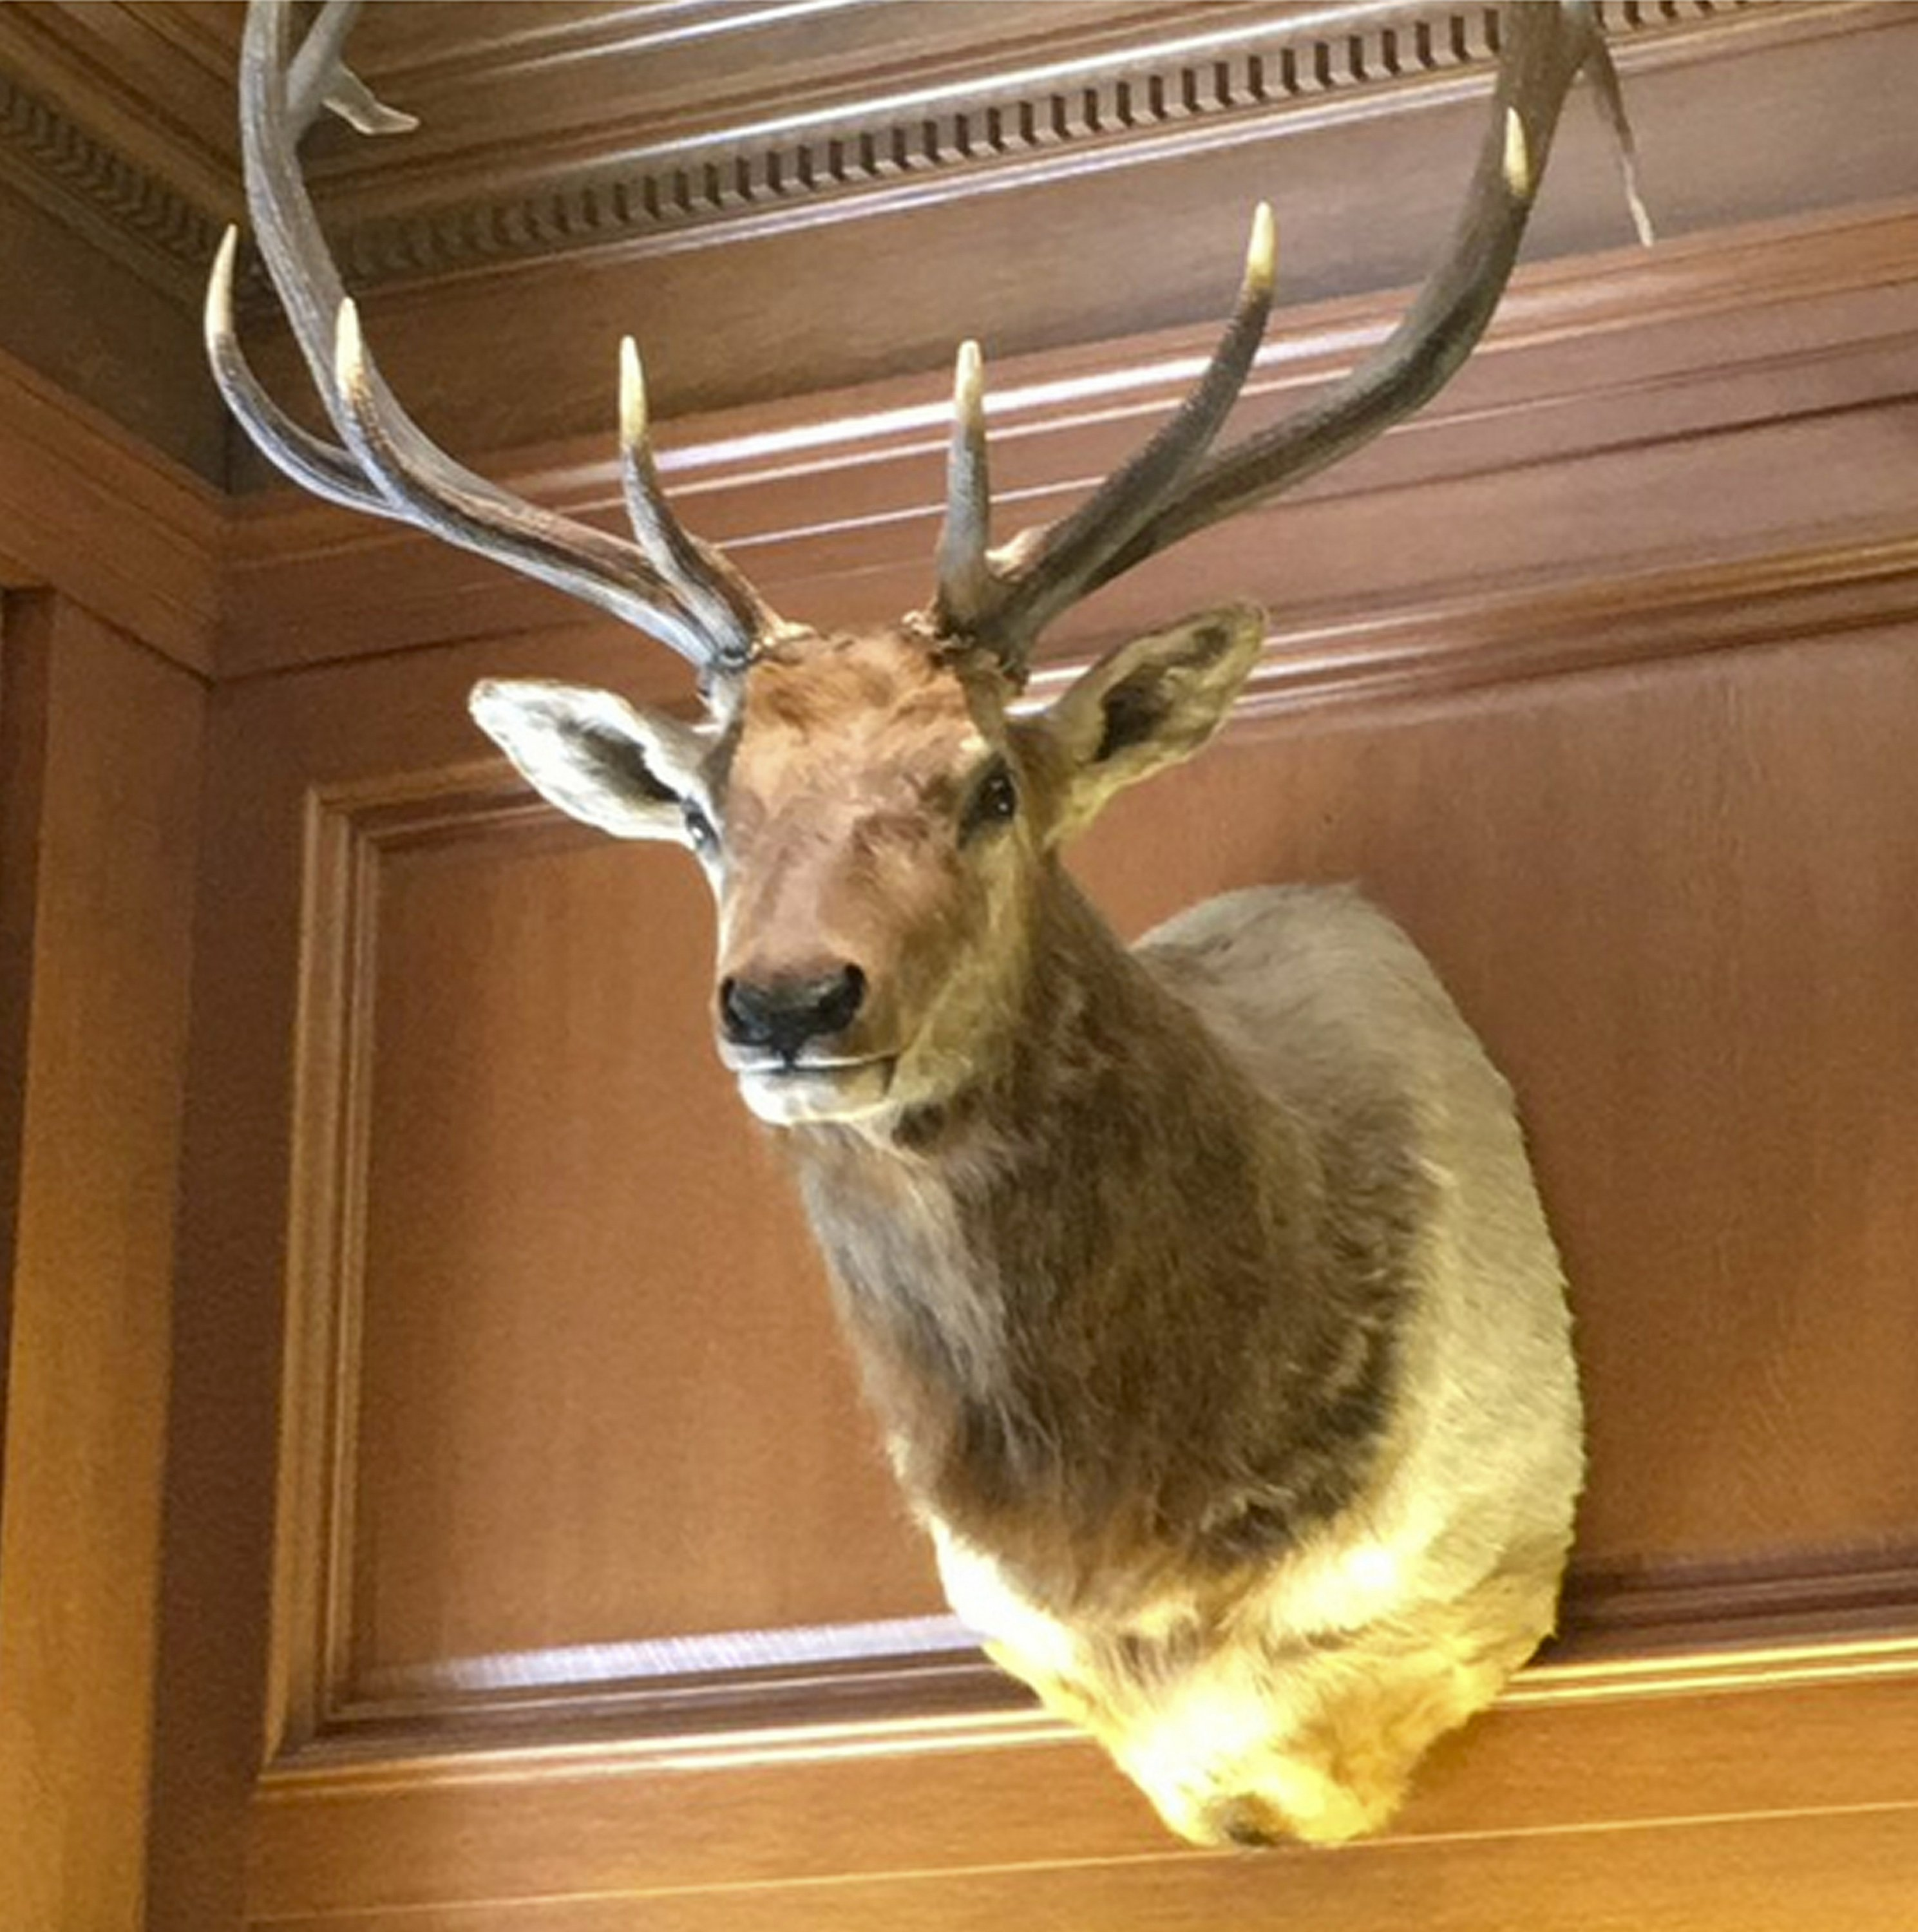 Supreme Court's newest justice has an elk as an office mate